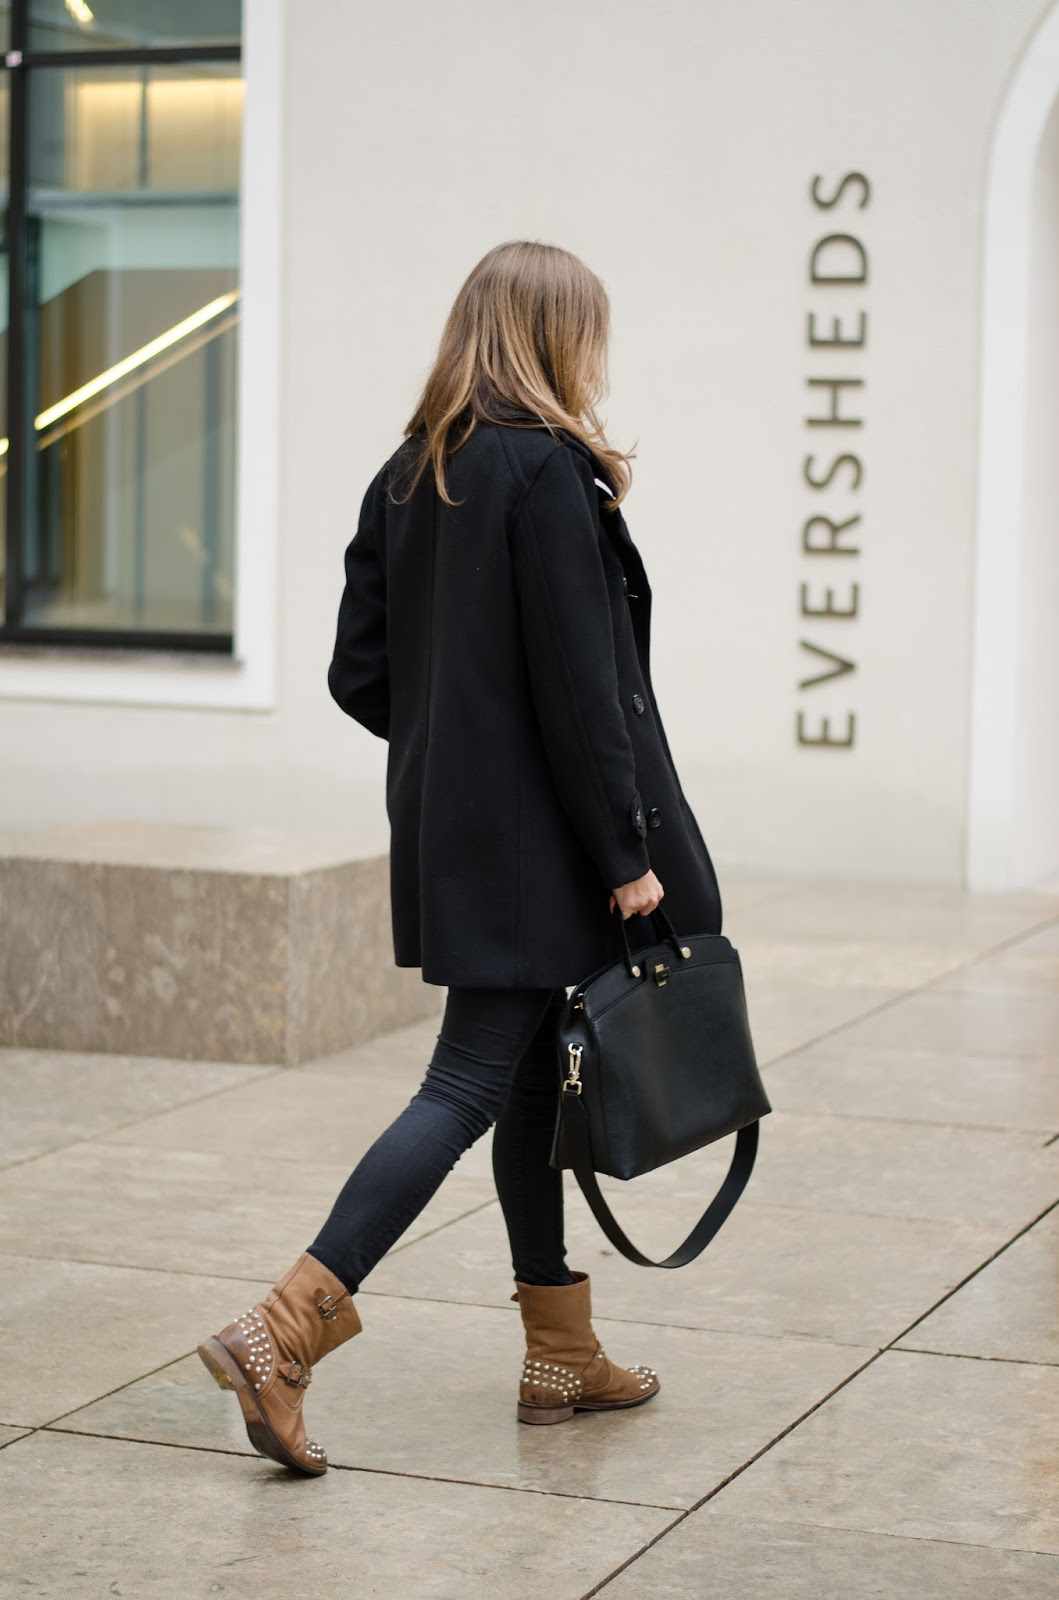 kristjaana mere black pea coat black skinny jeans studded ankle boots fall outfit